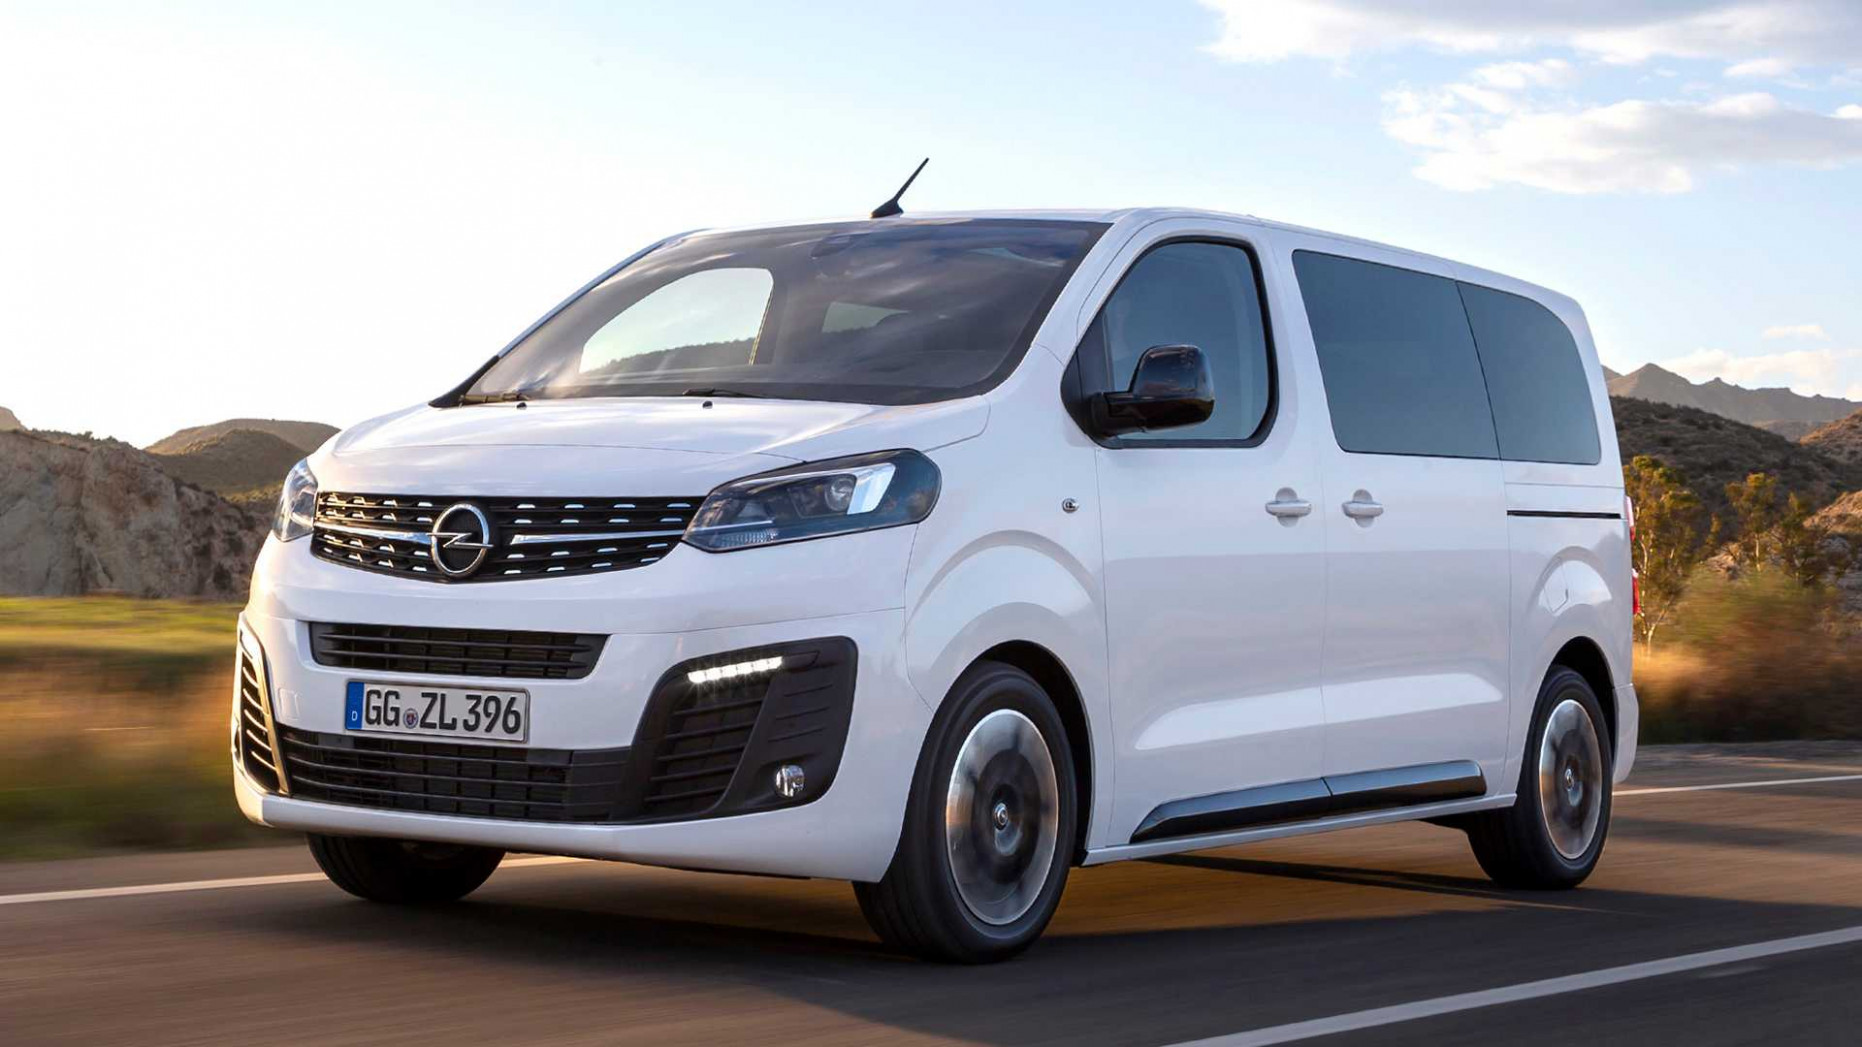 Opel-Zafira Life-News und -Tests | Motor8.com